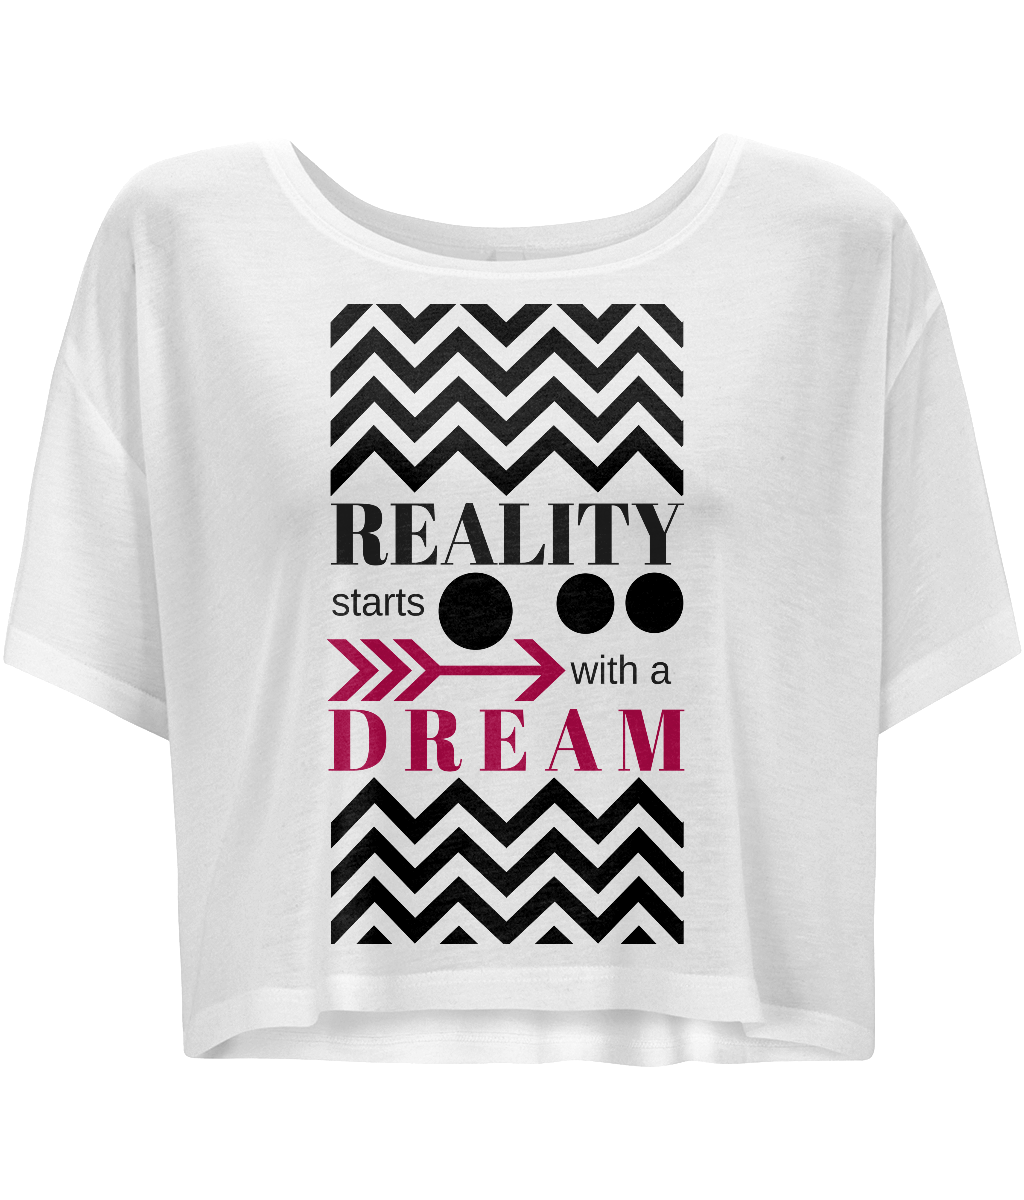 Women Flowy Boxy T-Shirt - REALITY starts with a dream